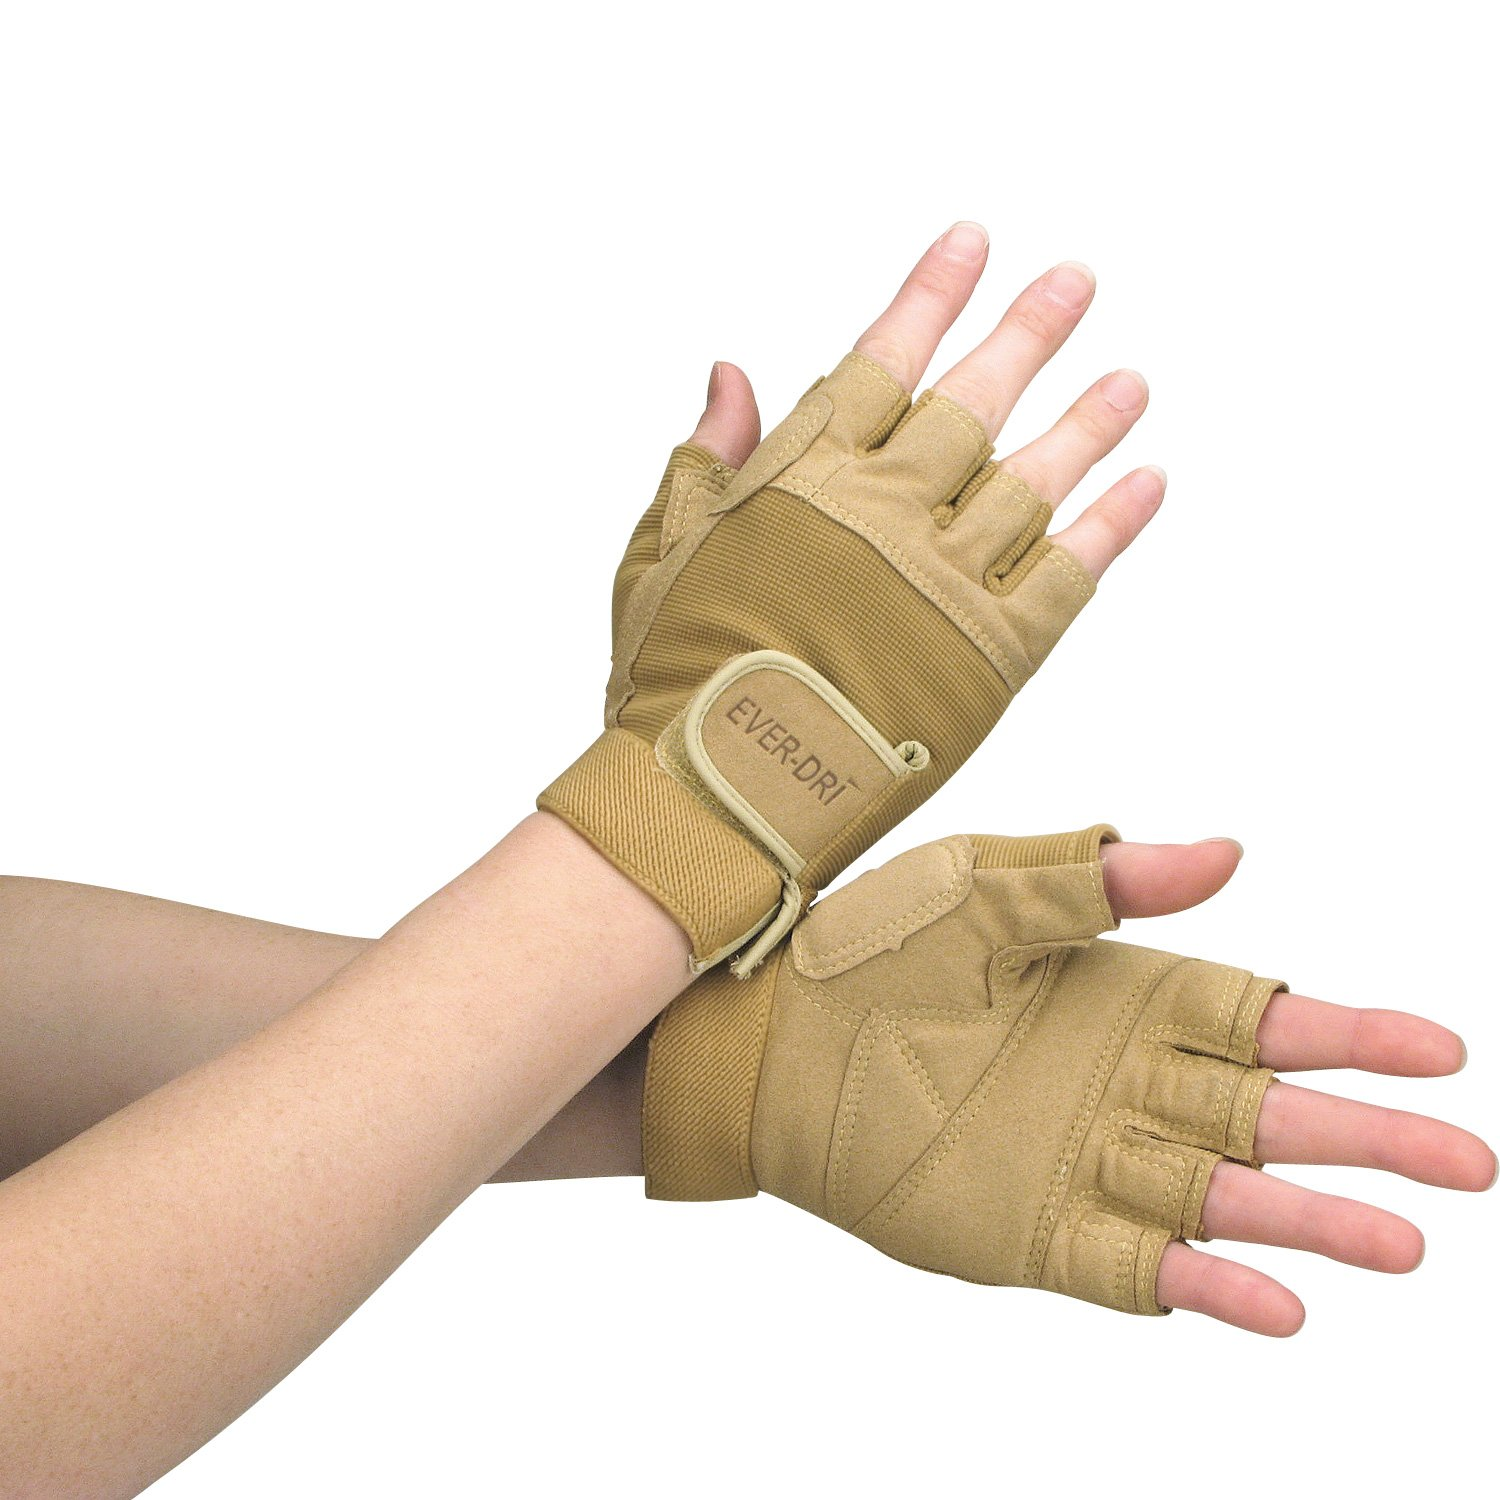 Director's Showcase EVER-DRI Color Guard Gloves (Tan, X-Large)